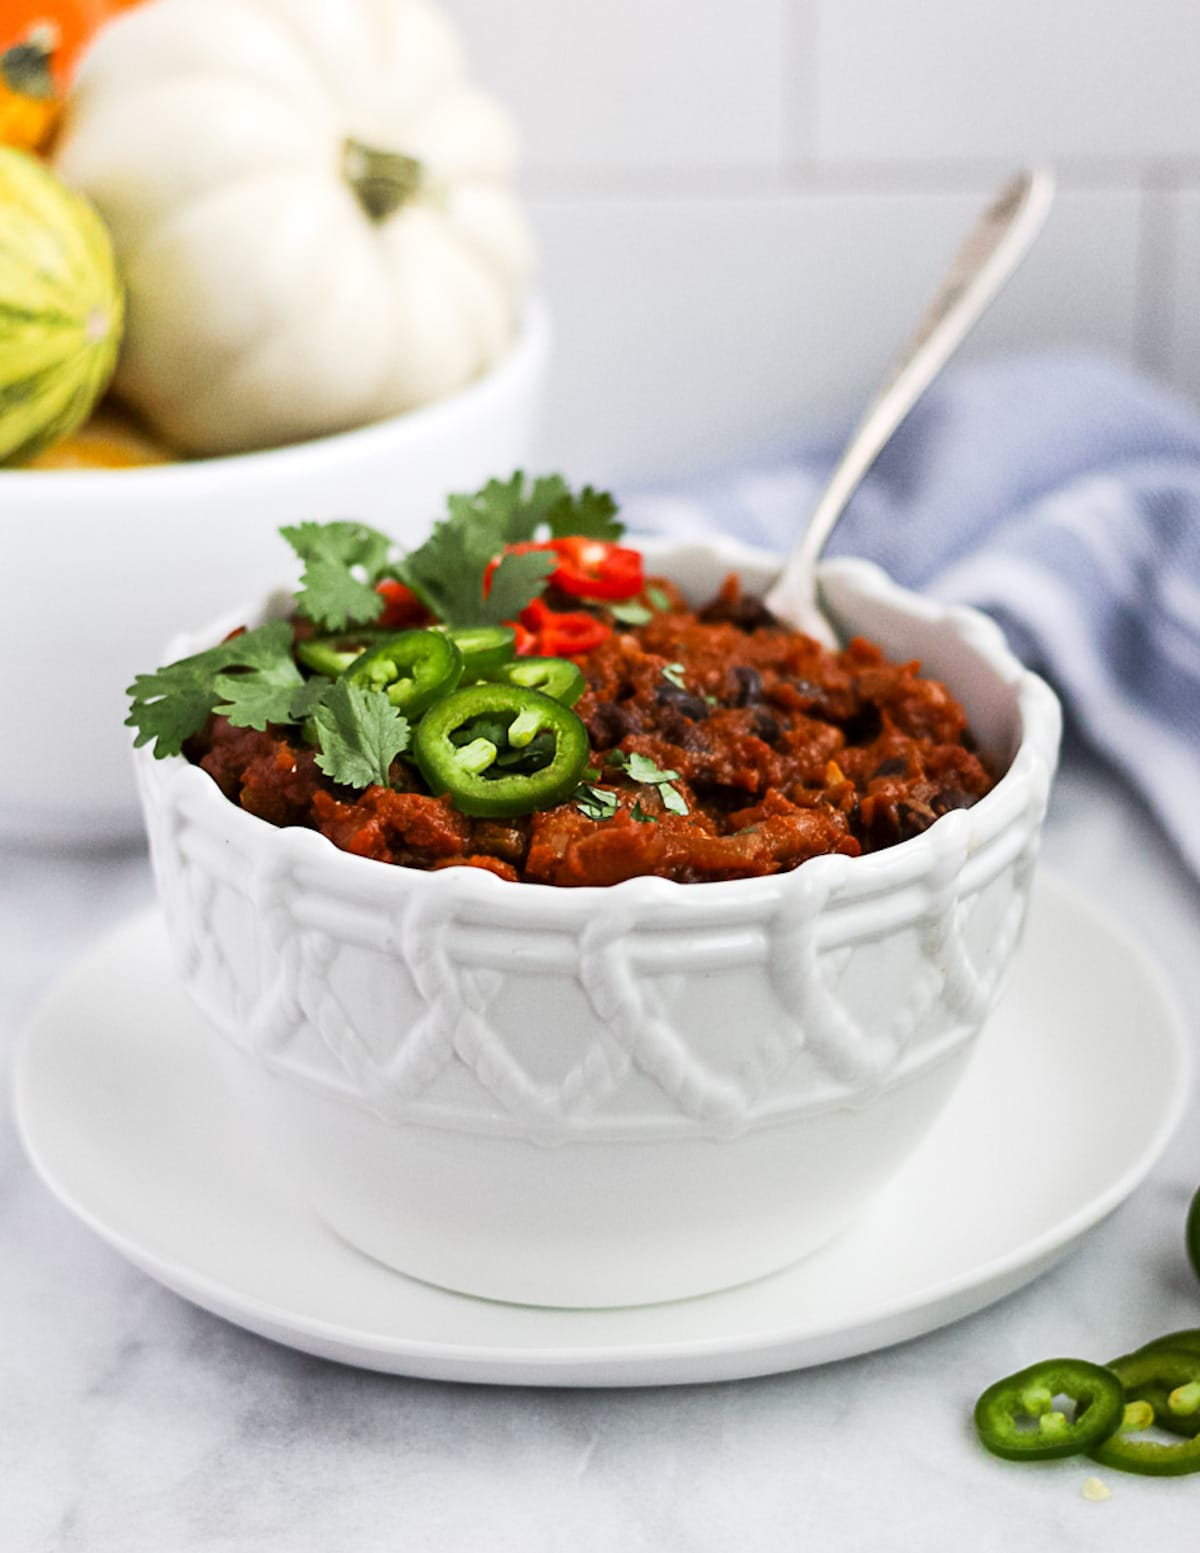 Chili in a bowl with a spoon dipped in, and peppers and cilantro on top. The background has a bowl of pumpkins, a blue cloth, and sliced peppers.